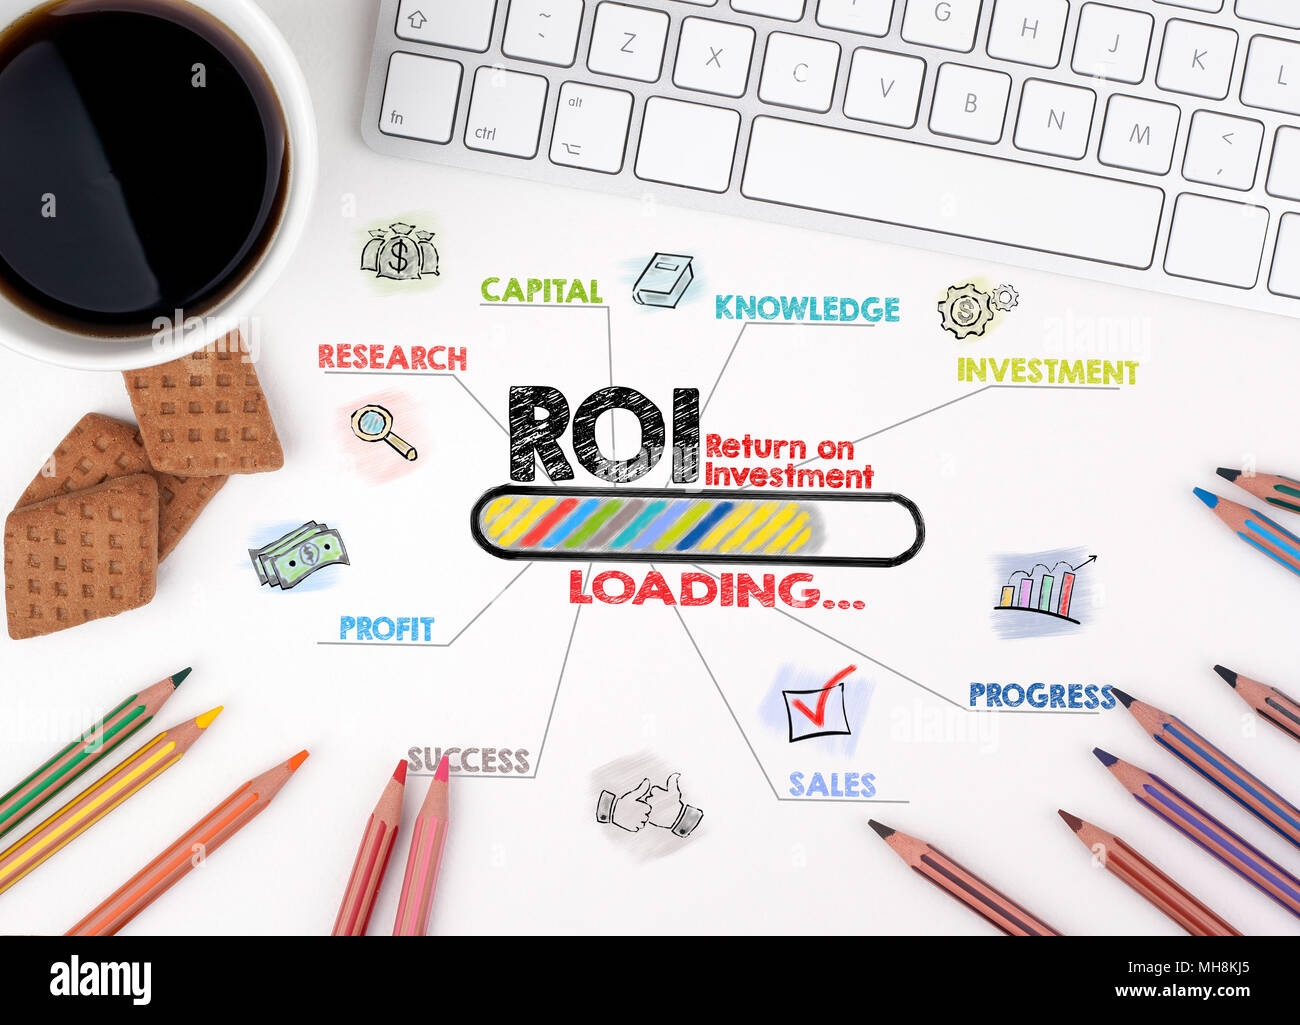 ROI Return on Investment, Business concept - Stock Image